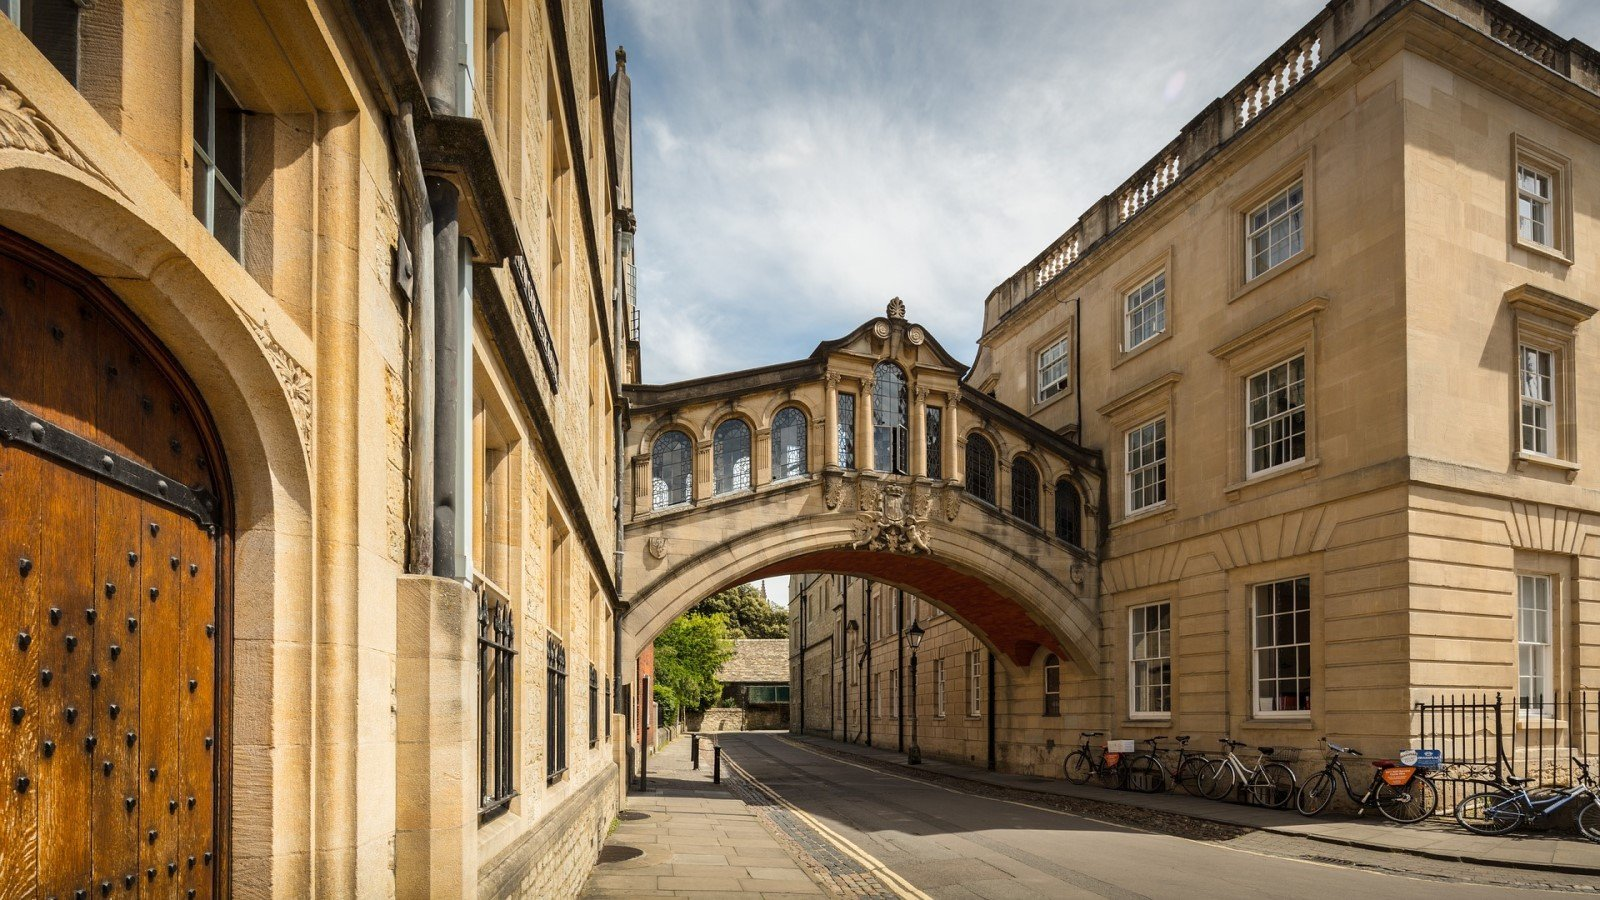 Oxford: City of Dreaming Spires